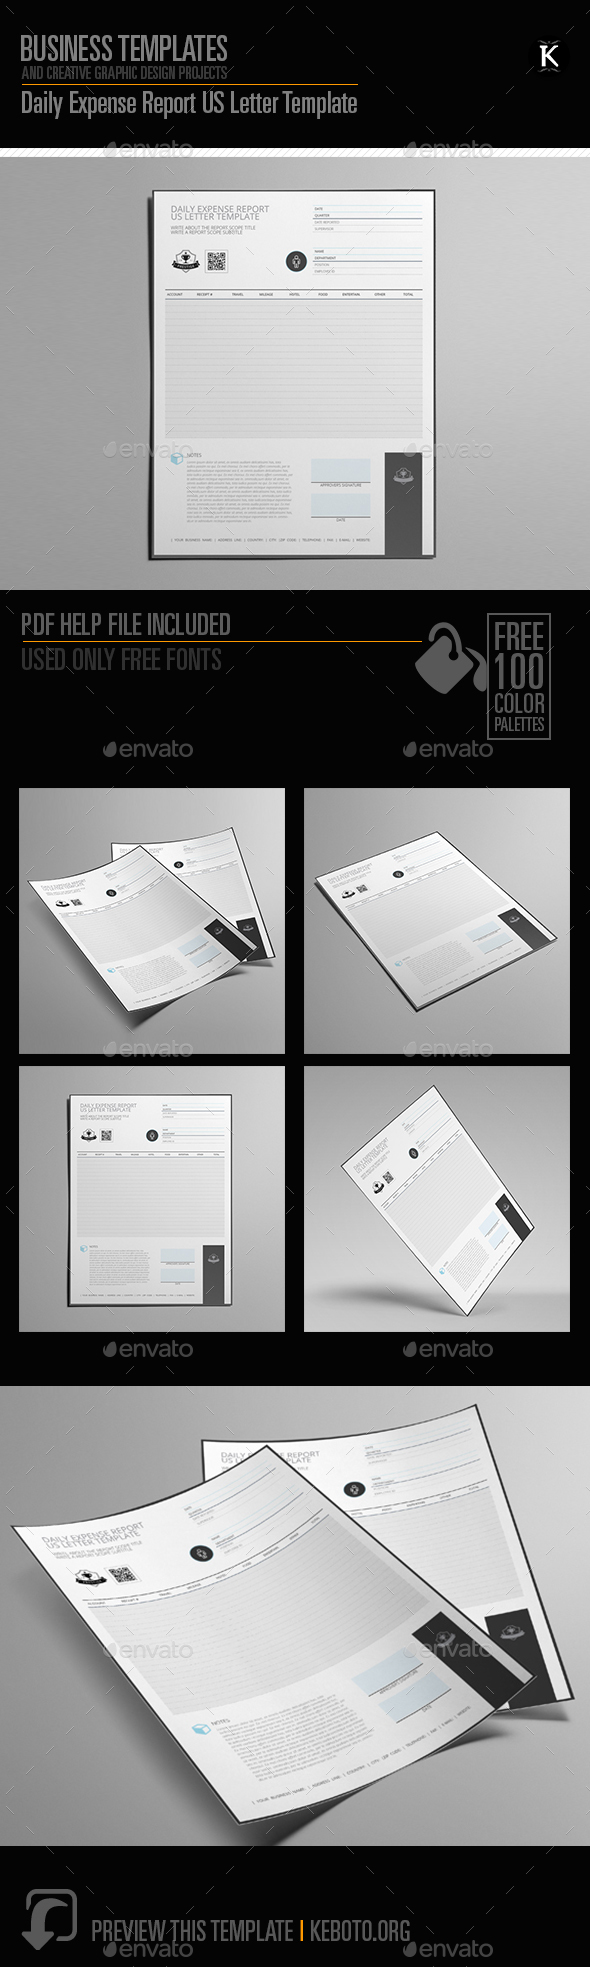 Daily Expense Report US Letter Template by Keboto | GraphicRiver